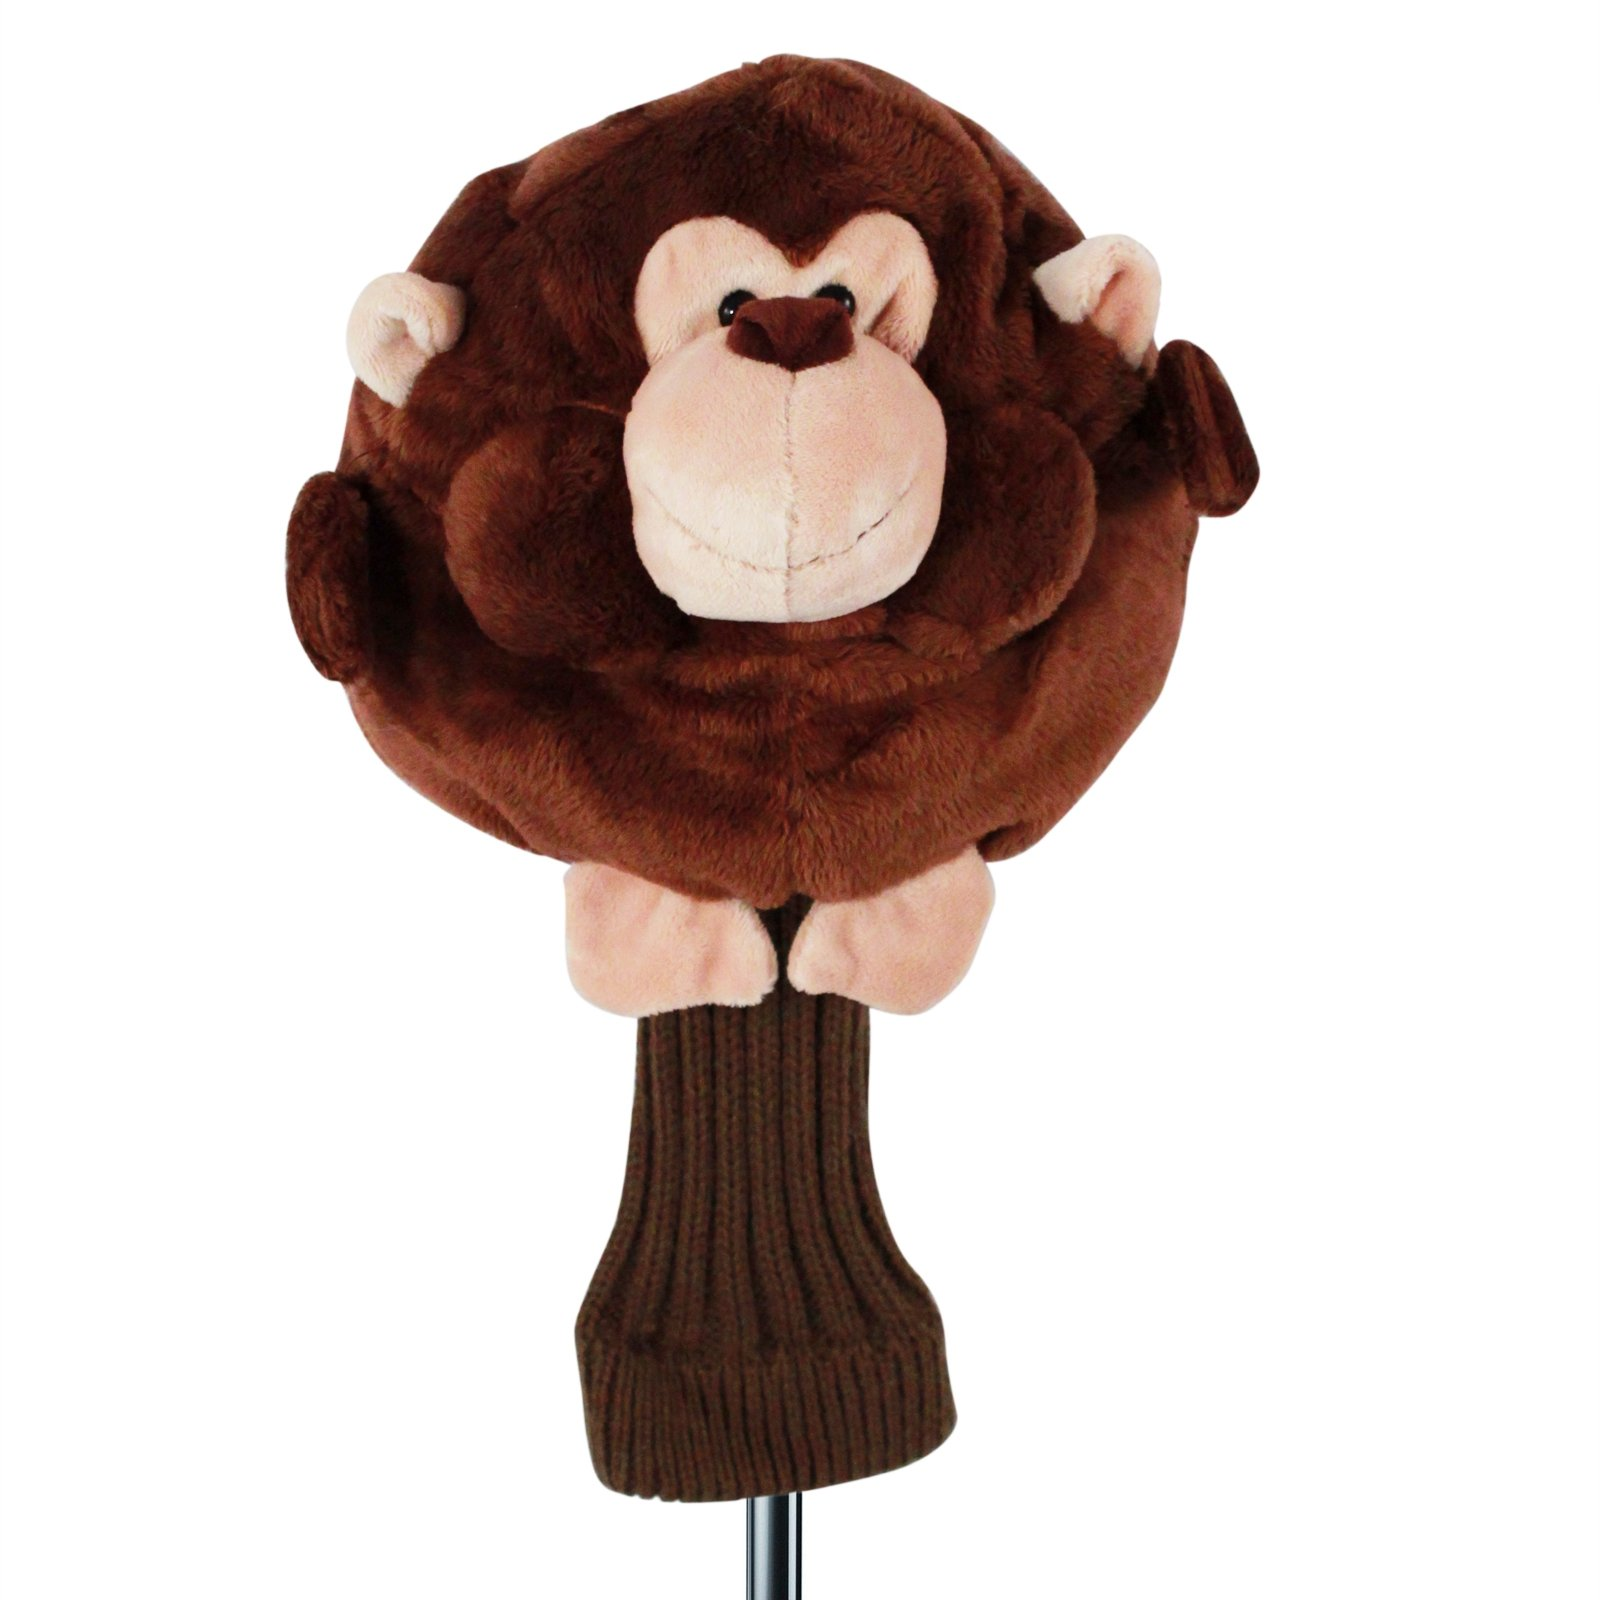 Golf Head Cover Chubby Chipp Monkey 460cc Driver Wood Sporting Goods Headcover